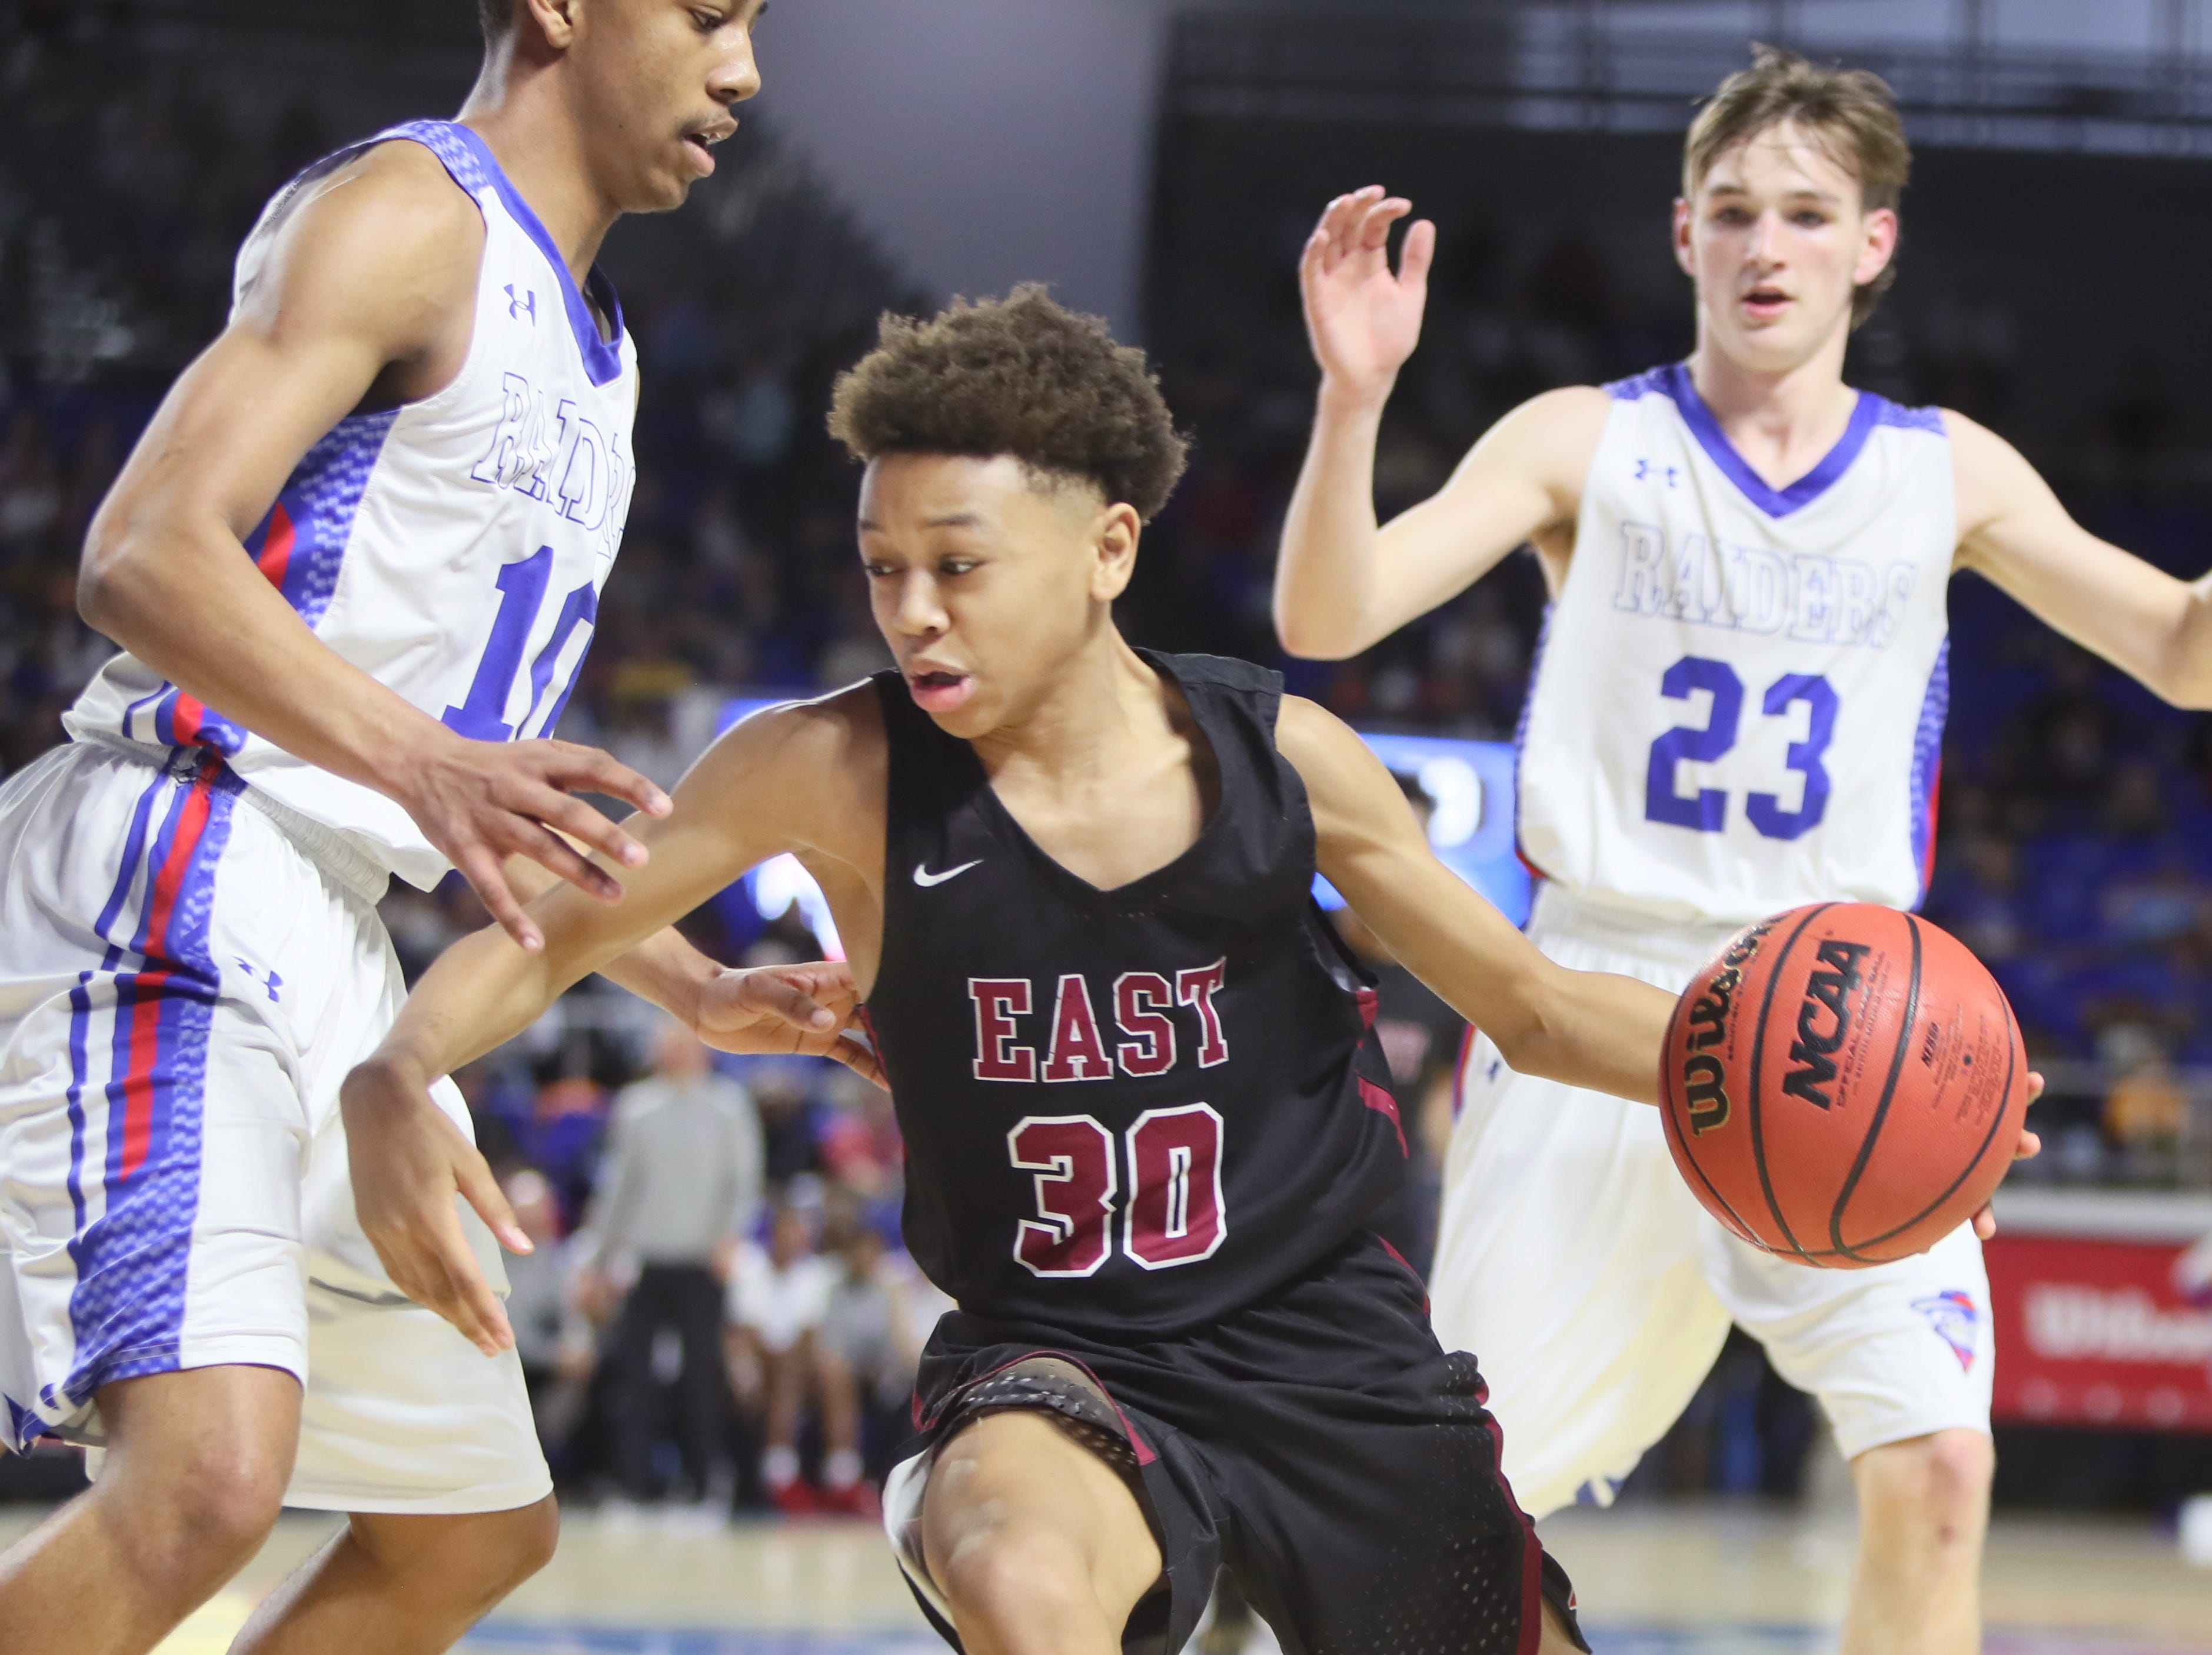 Memphis East's Terrence Jacobs tries to drive past Cleveland's Jacobi Wood during the TSSAA Division I basketball state tournament at the Murphy Center in Murfreesboro, Tenn. on Thursday, March 14, 2019.